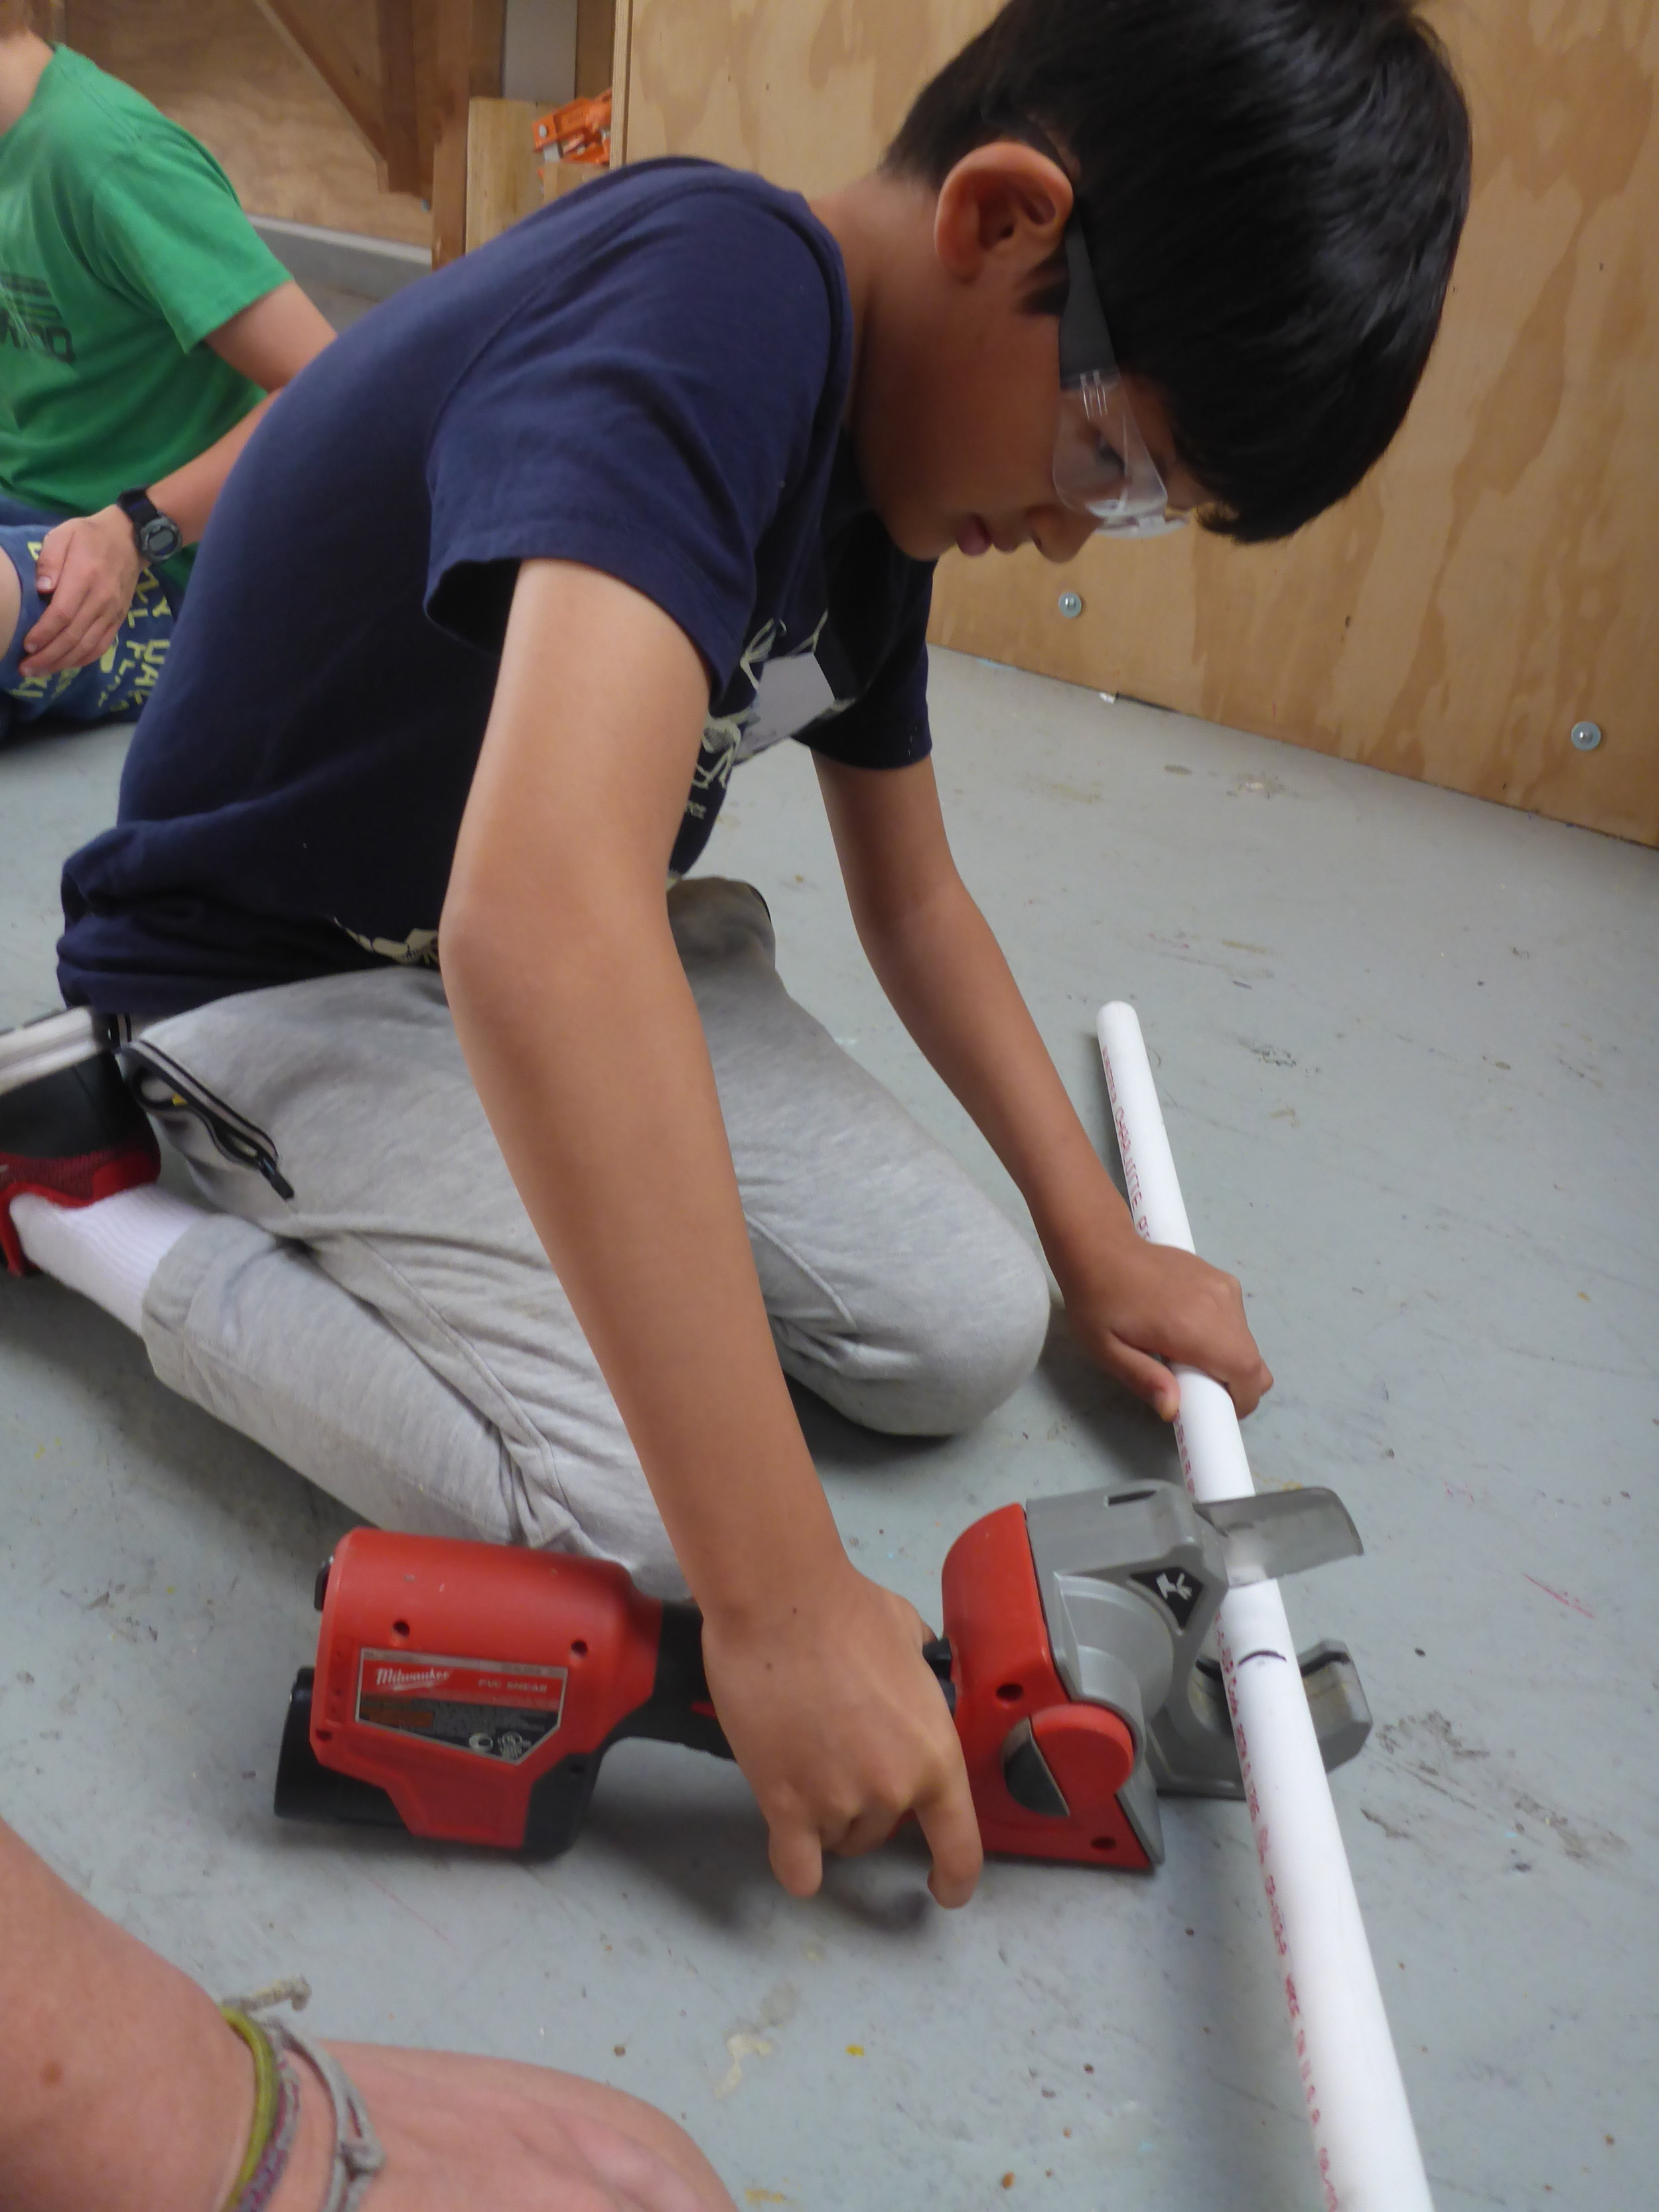 Munir learns how to use a PVC cutter and uses it to cut down the long pieces into more manageable lengths.